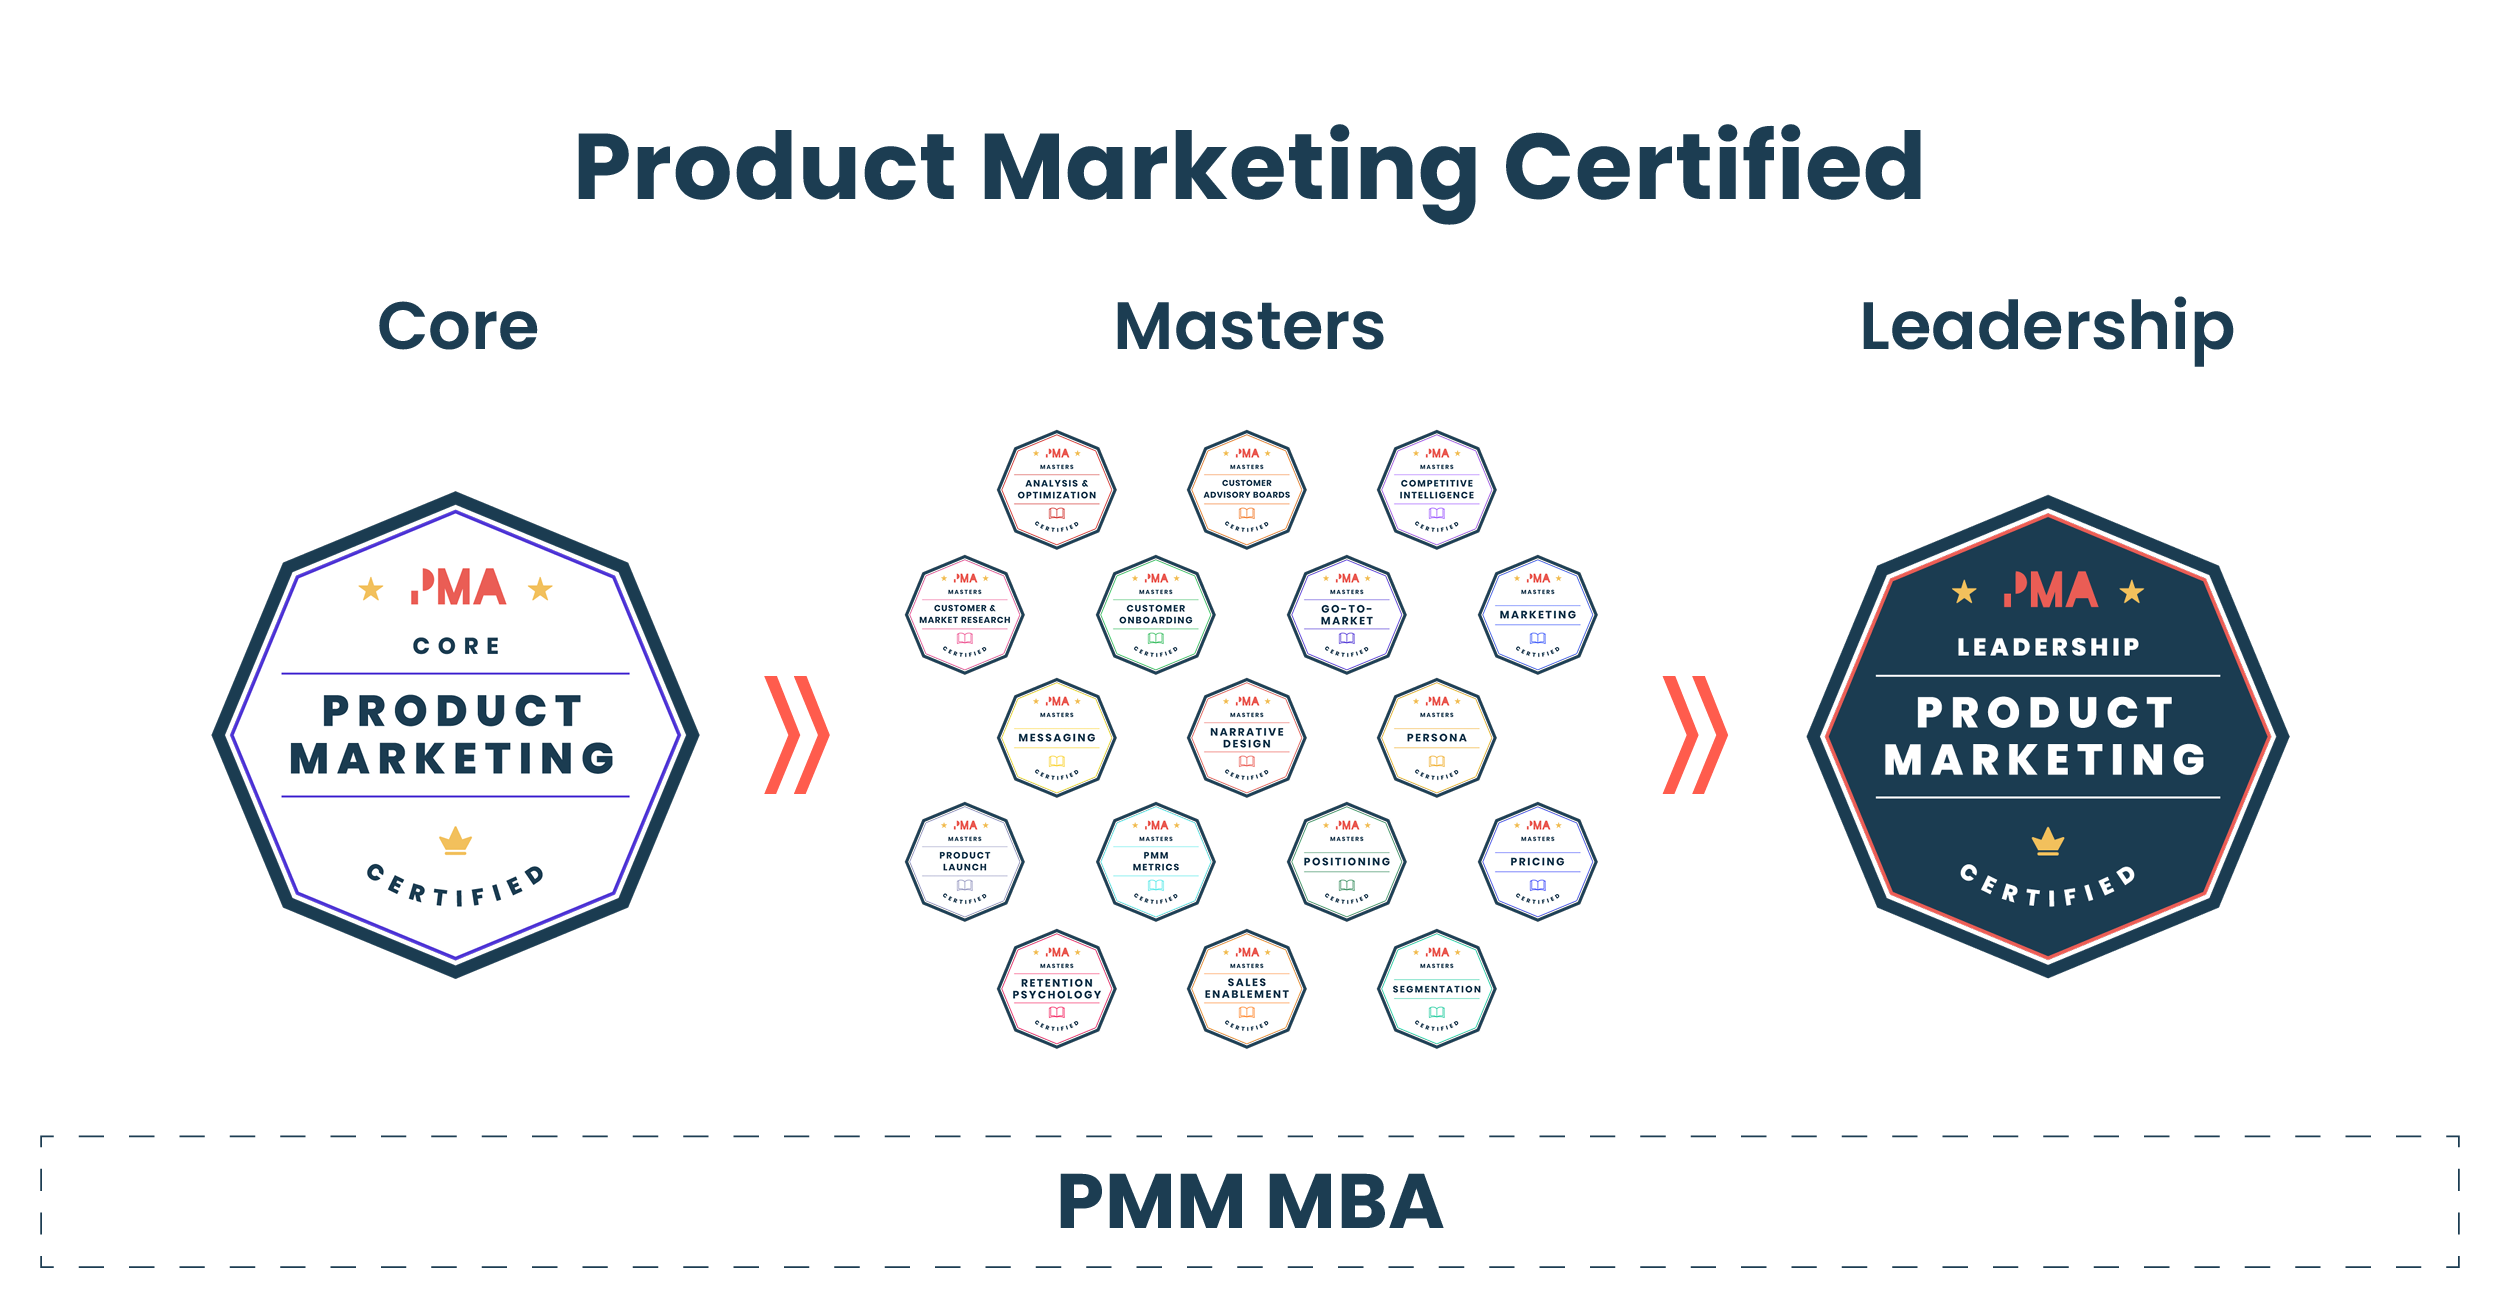 Product marketing certified journey